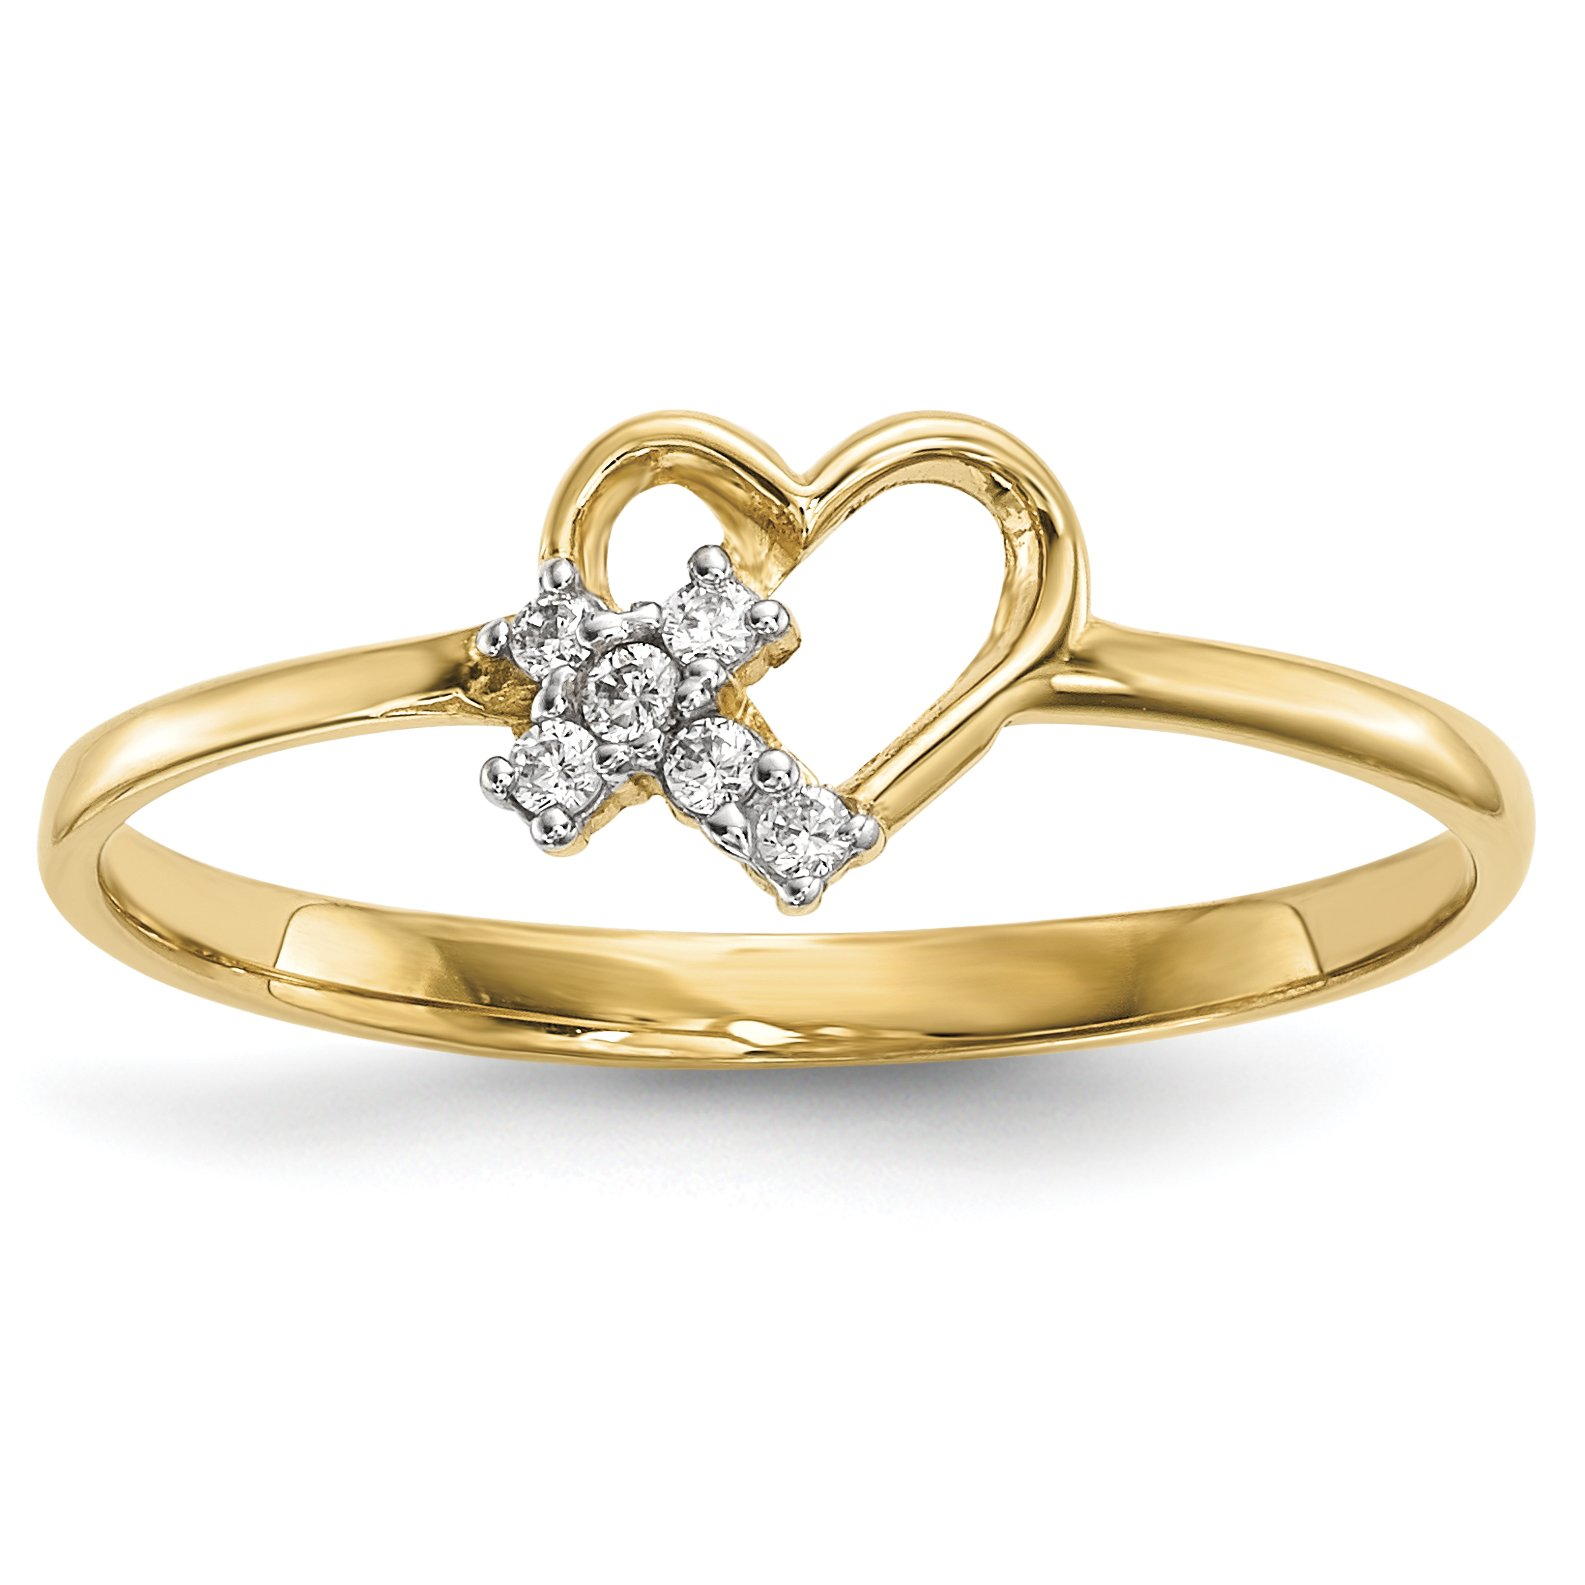 ICE CARATS 14k Yellow Gold Heart Cubic Zirconia Cz Cross Religious Band Ring Size 7.00 S/love Fine Jewelry Gift Set For Women Heart